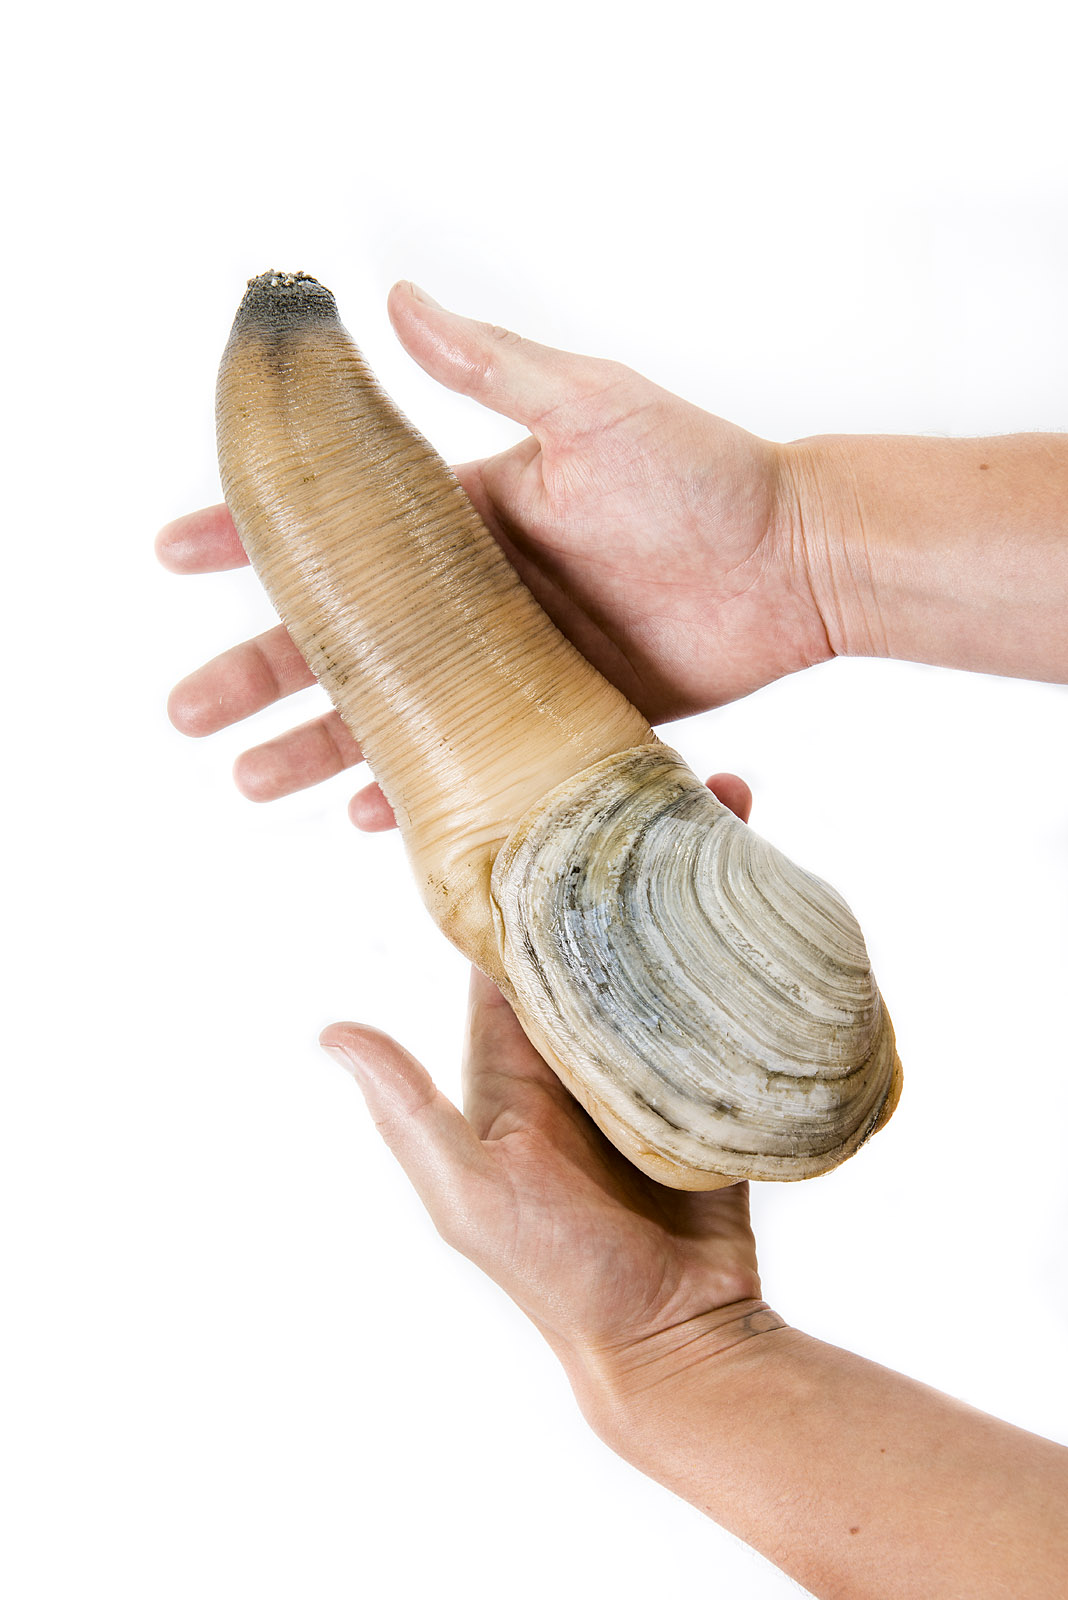 Gooey Duck Pictures : gooey, pictures, Geoduck, Wikipedia